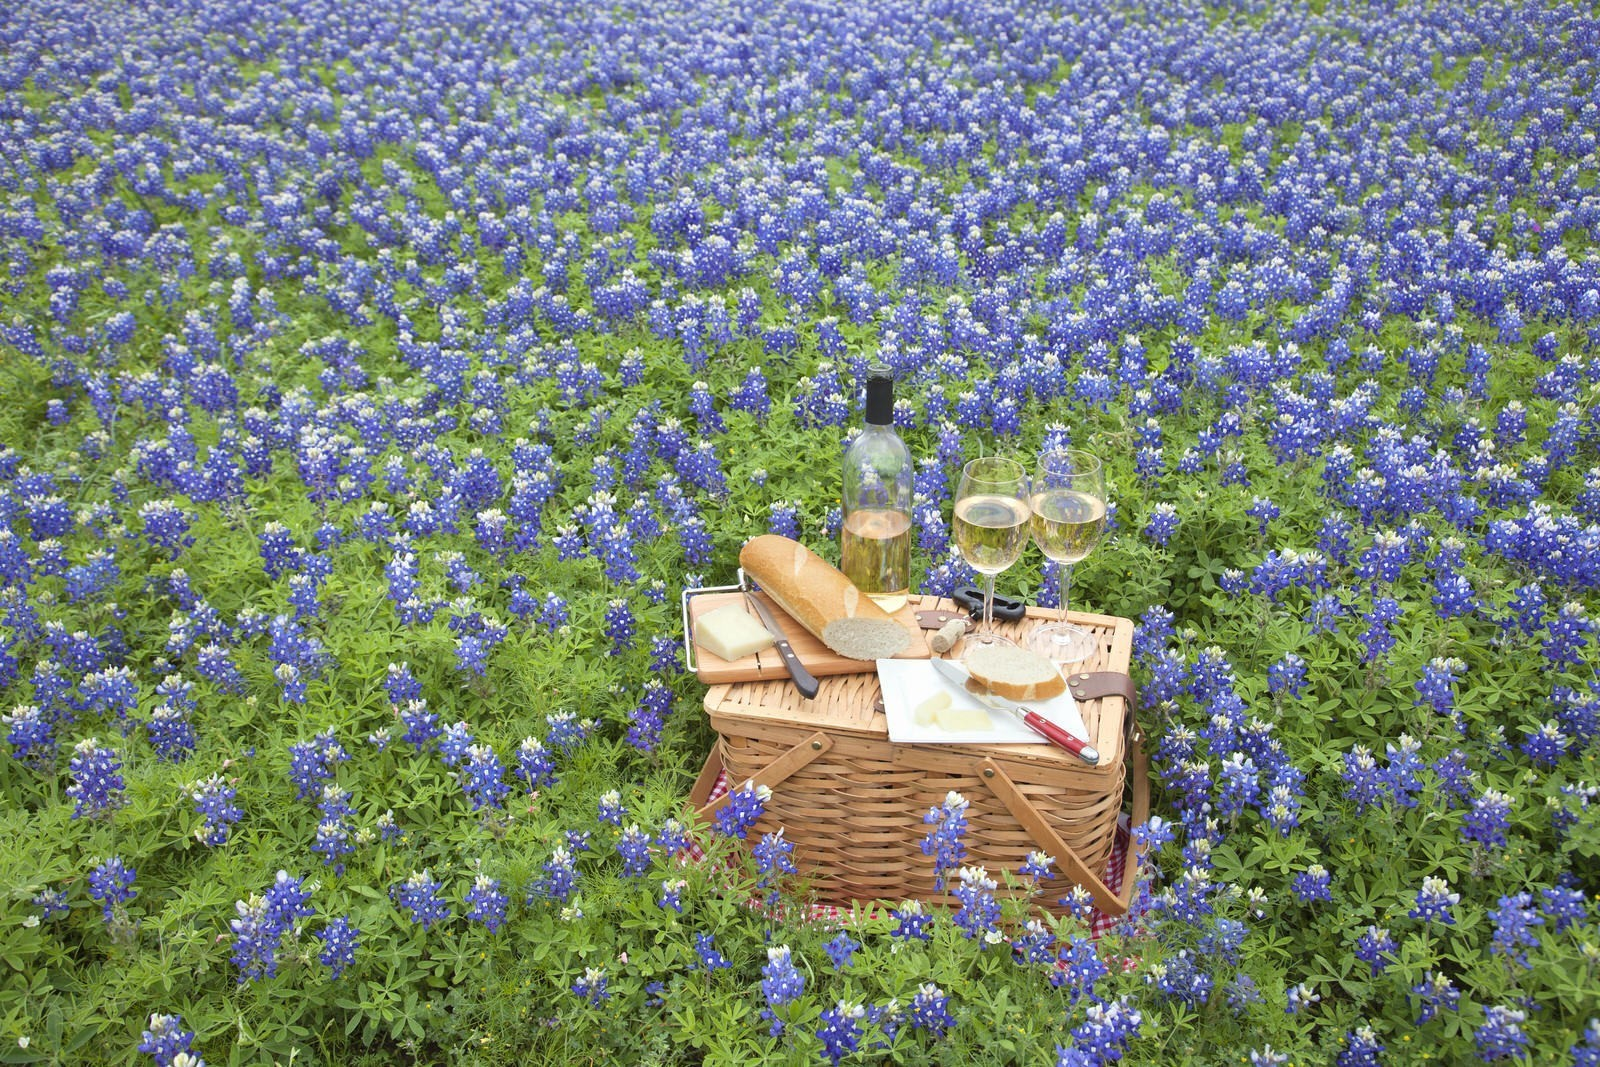 Road-tripping through Hill Country: Texas' up-and-coming vineyards